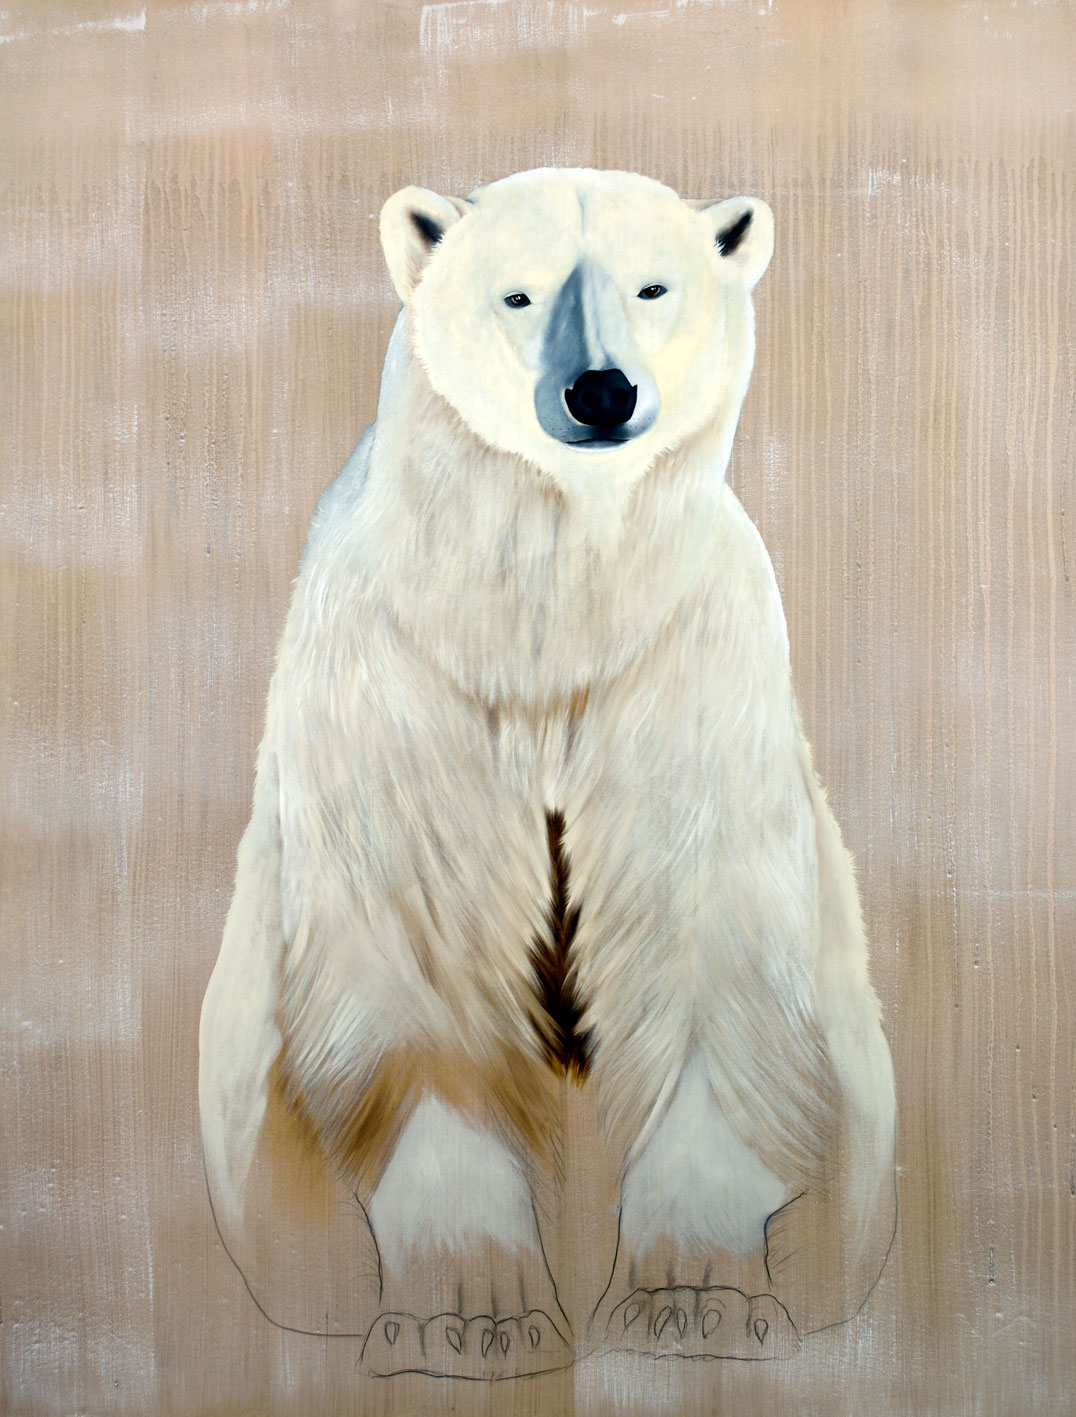 URSUS MARITIMUS ursus-maritimus-polar-bear-delete-threatened-endangered-extinction Thierry Bisch painter animals painting art decoration hotel design interior luxury nature biodiversity conservation